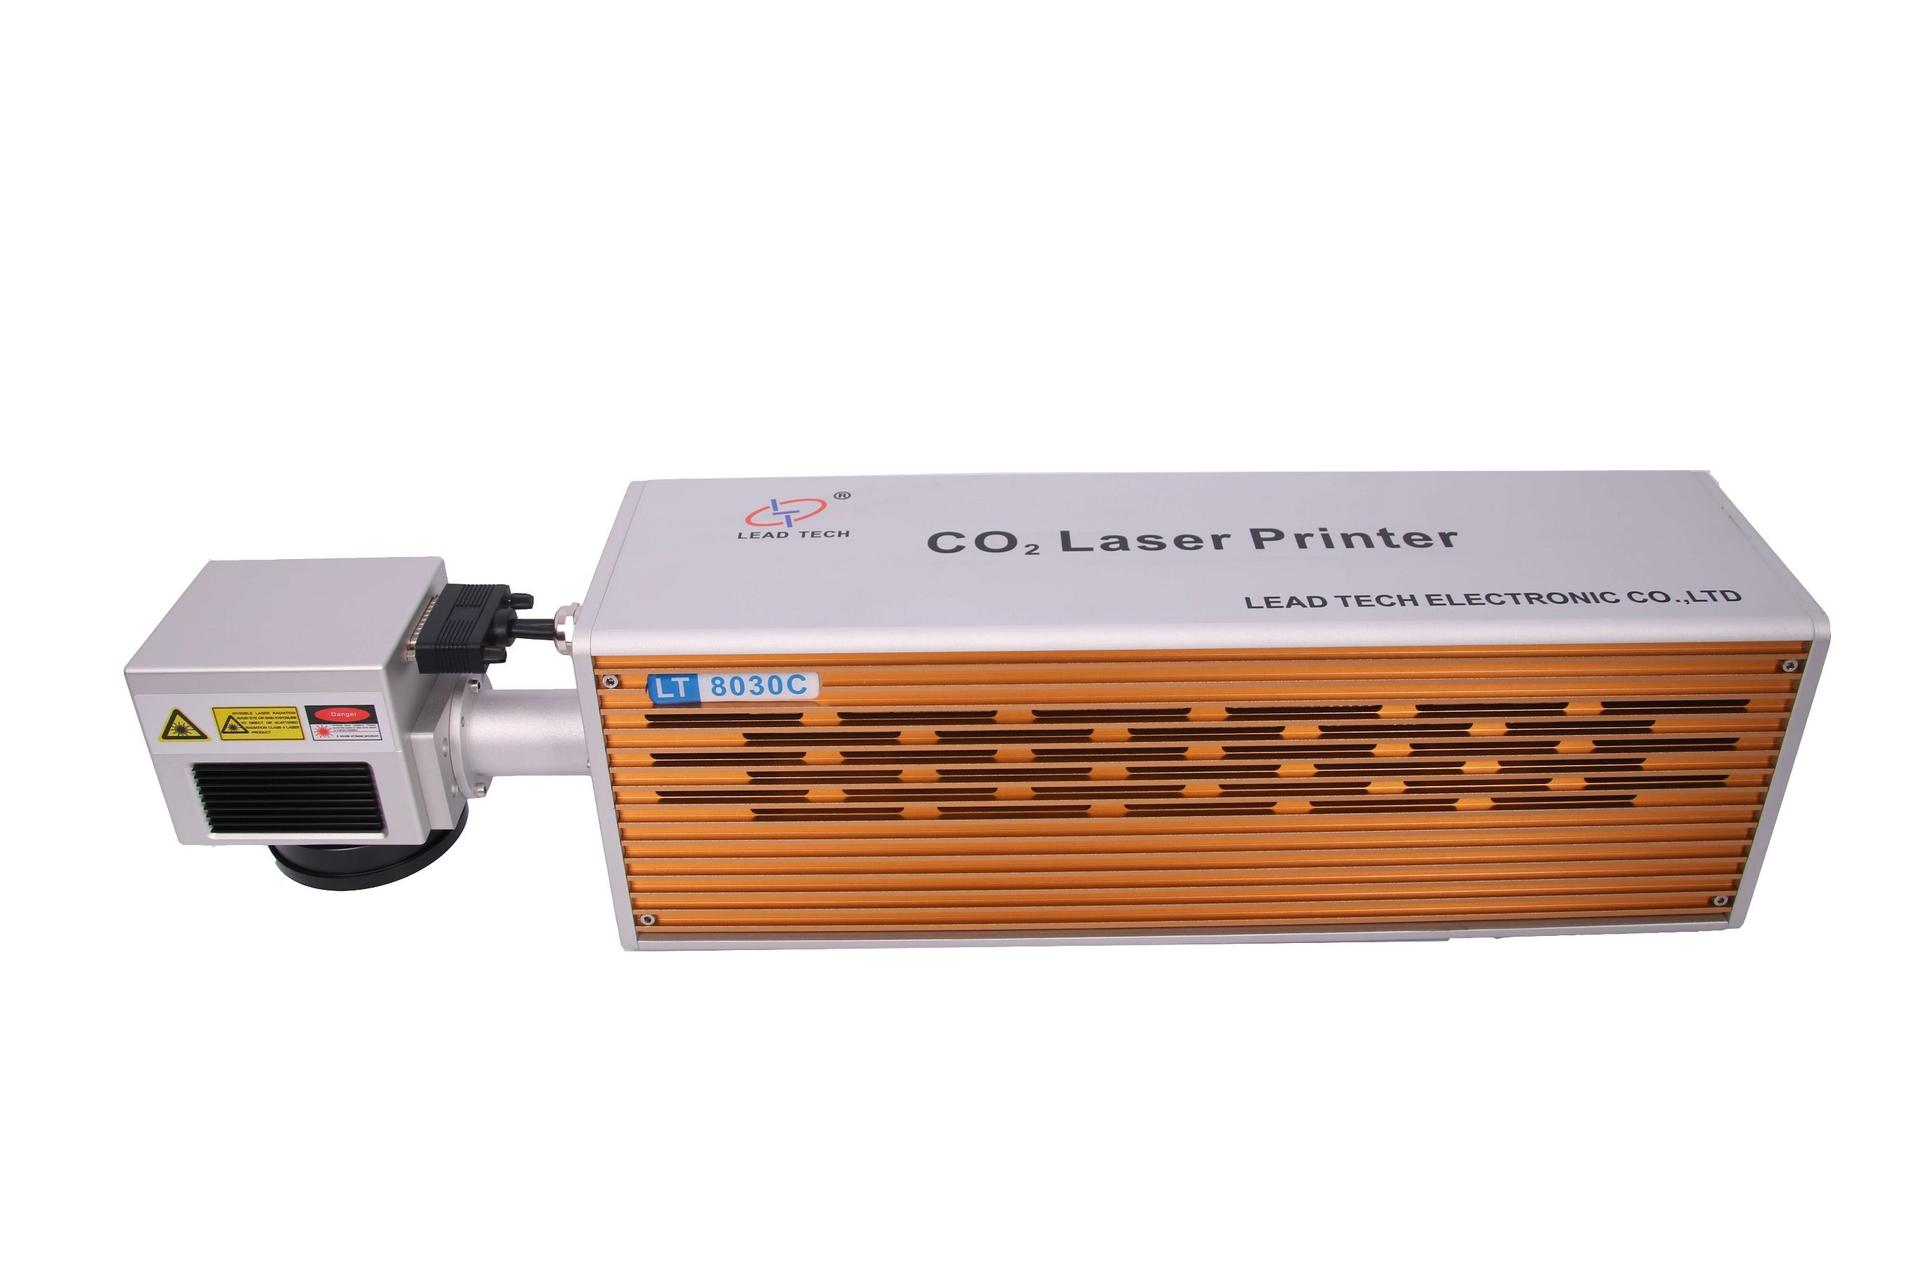 Lt8020c/Lt8030c CO2 High Speed Bar Code Date Character Laser Printer for Cable and Bottle